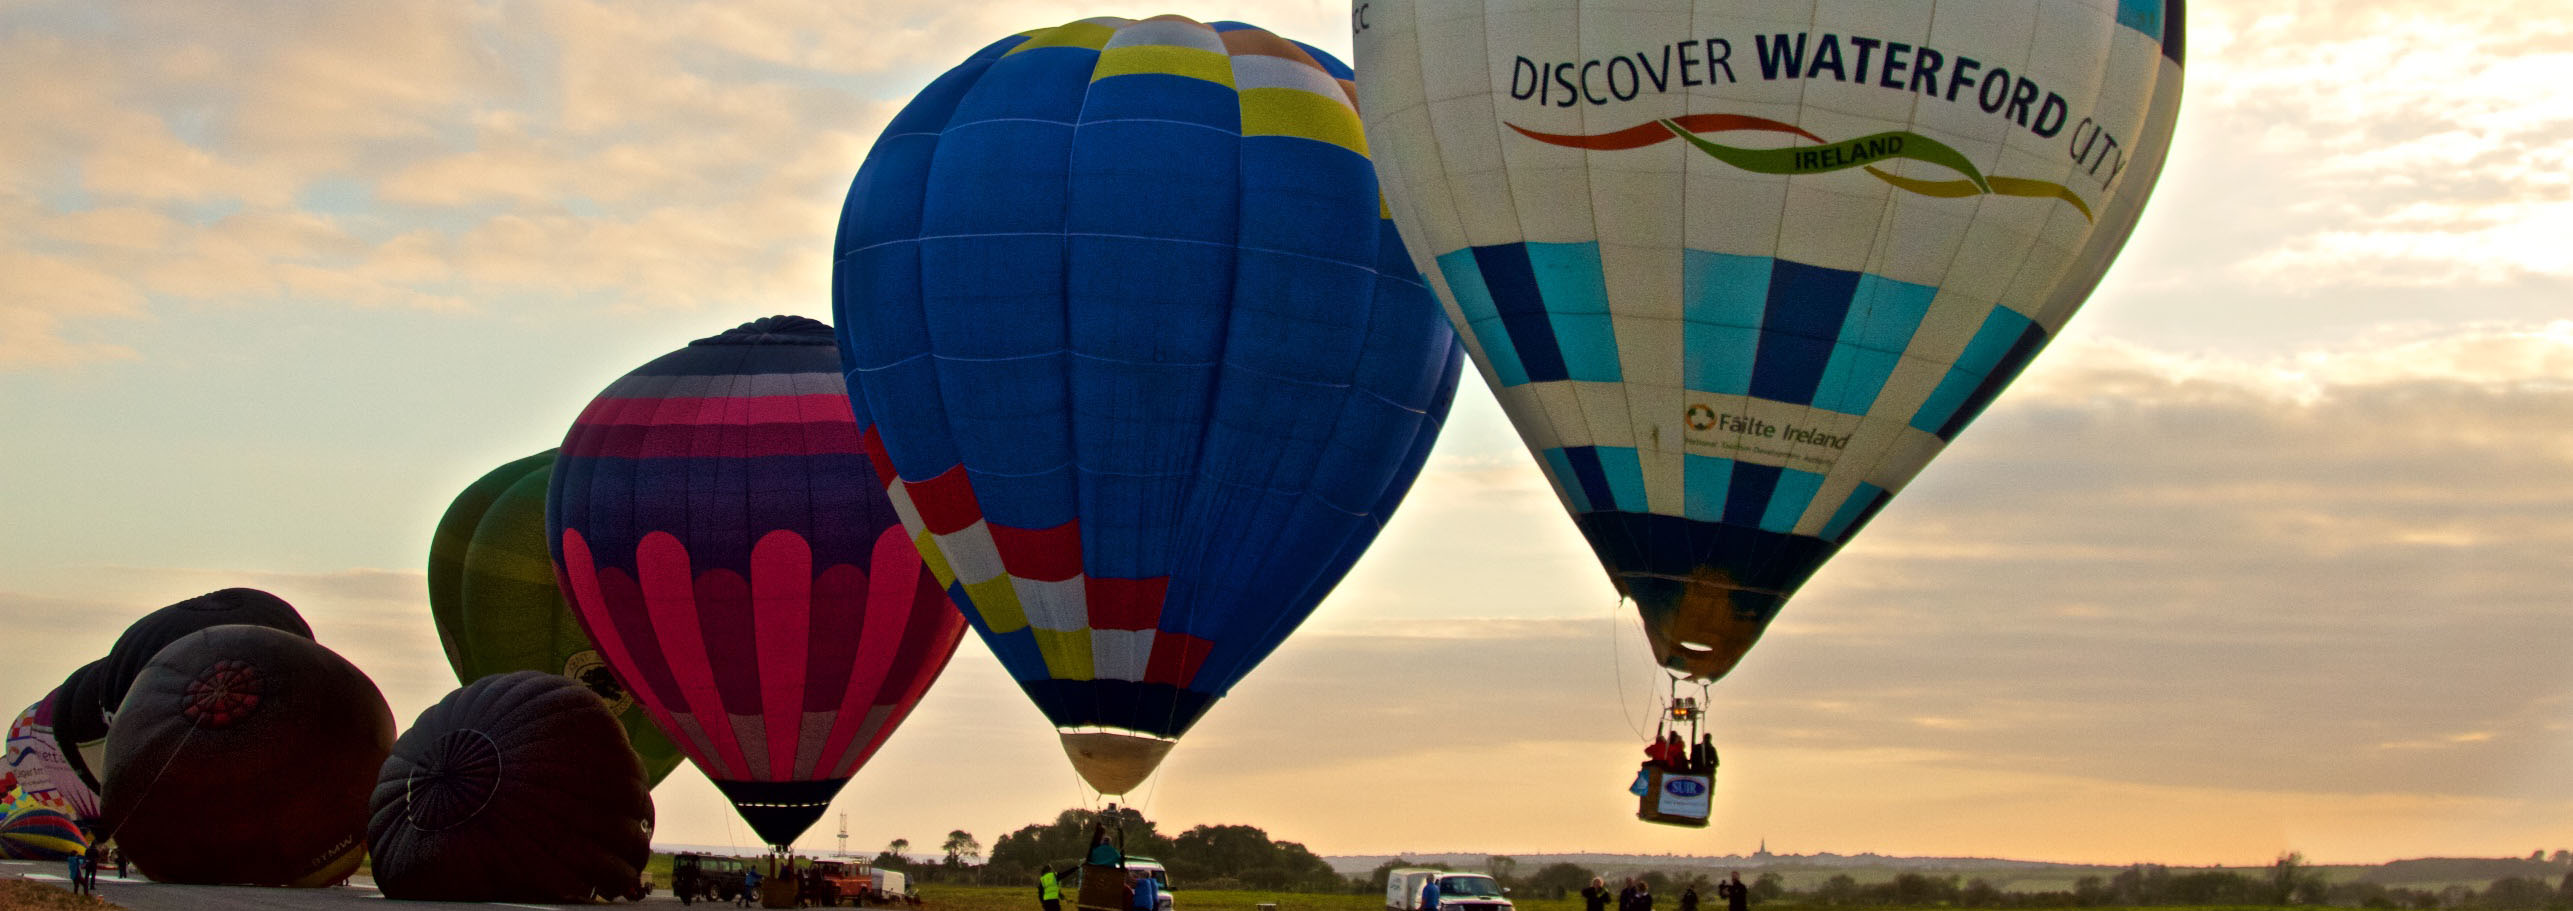 Irish Balloon Championships 2015 - Waterford Airport